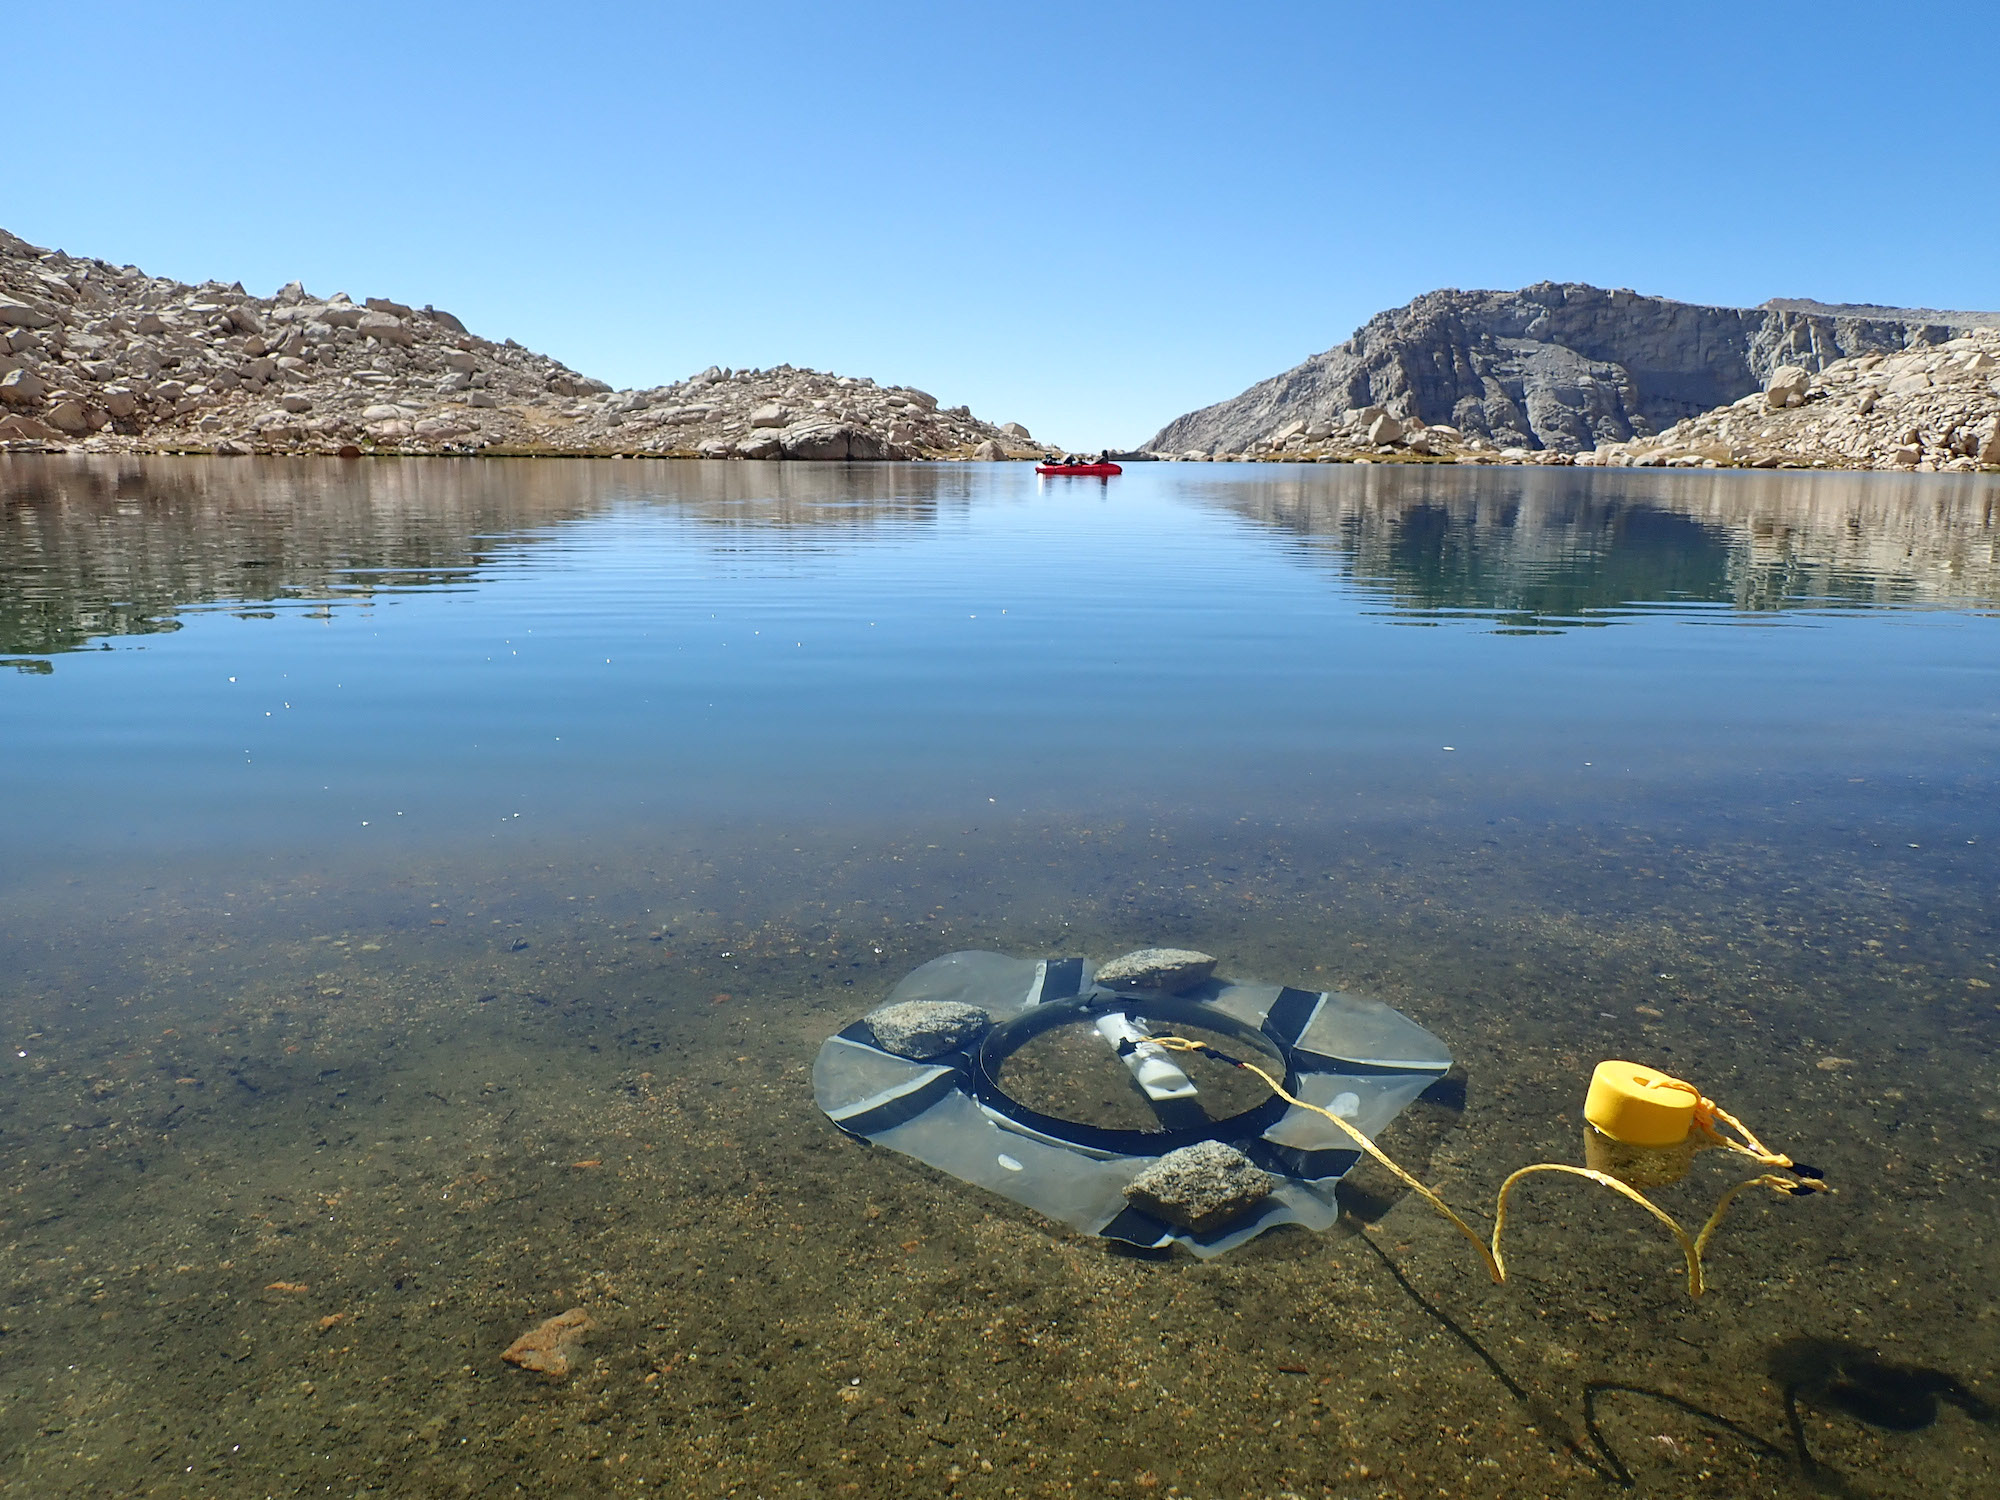 Benthic chambers on small Sierra lake